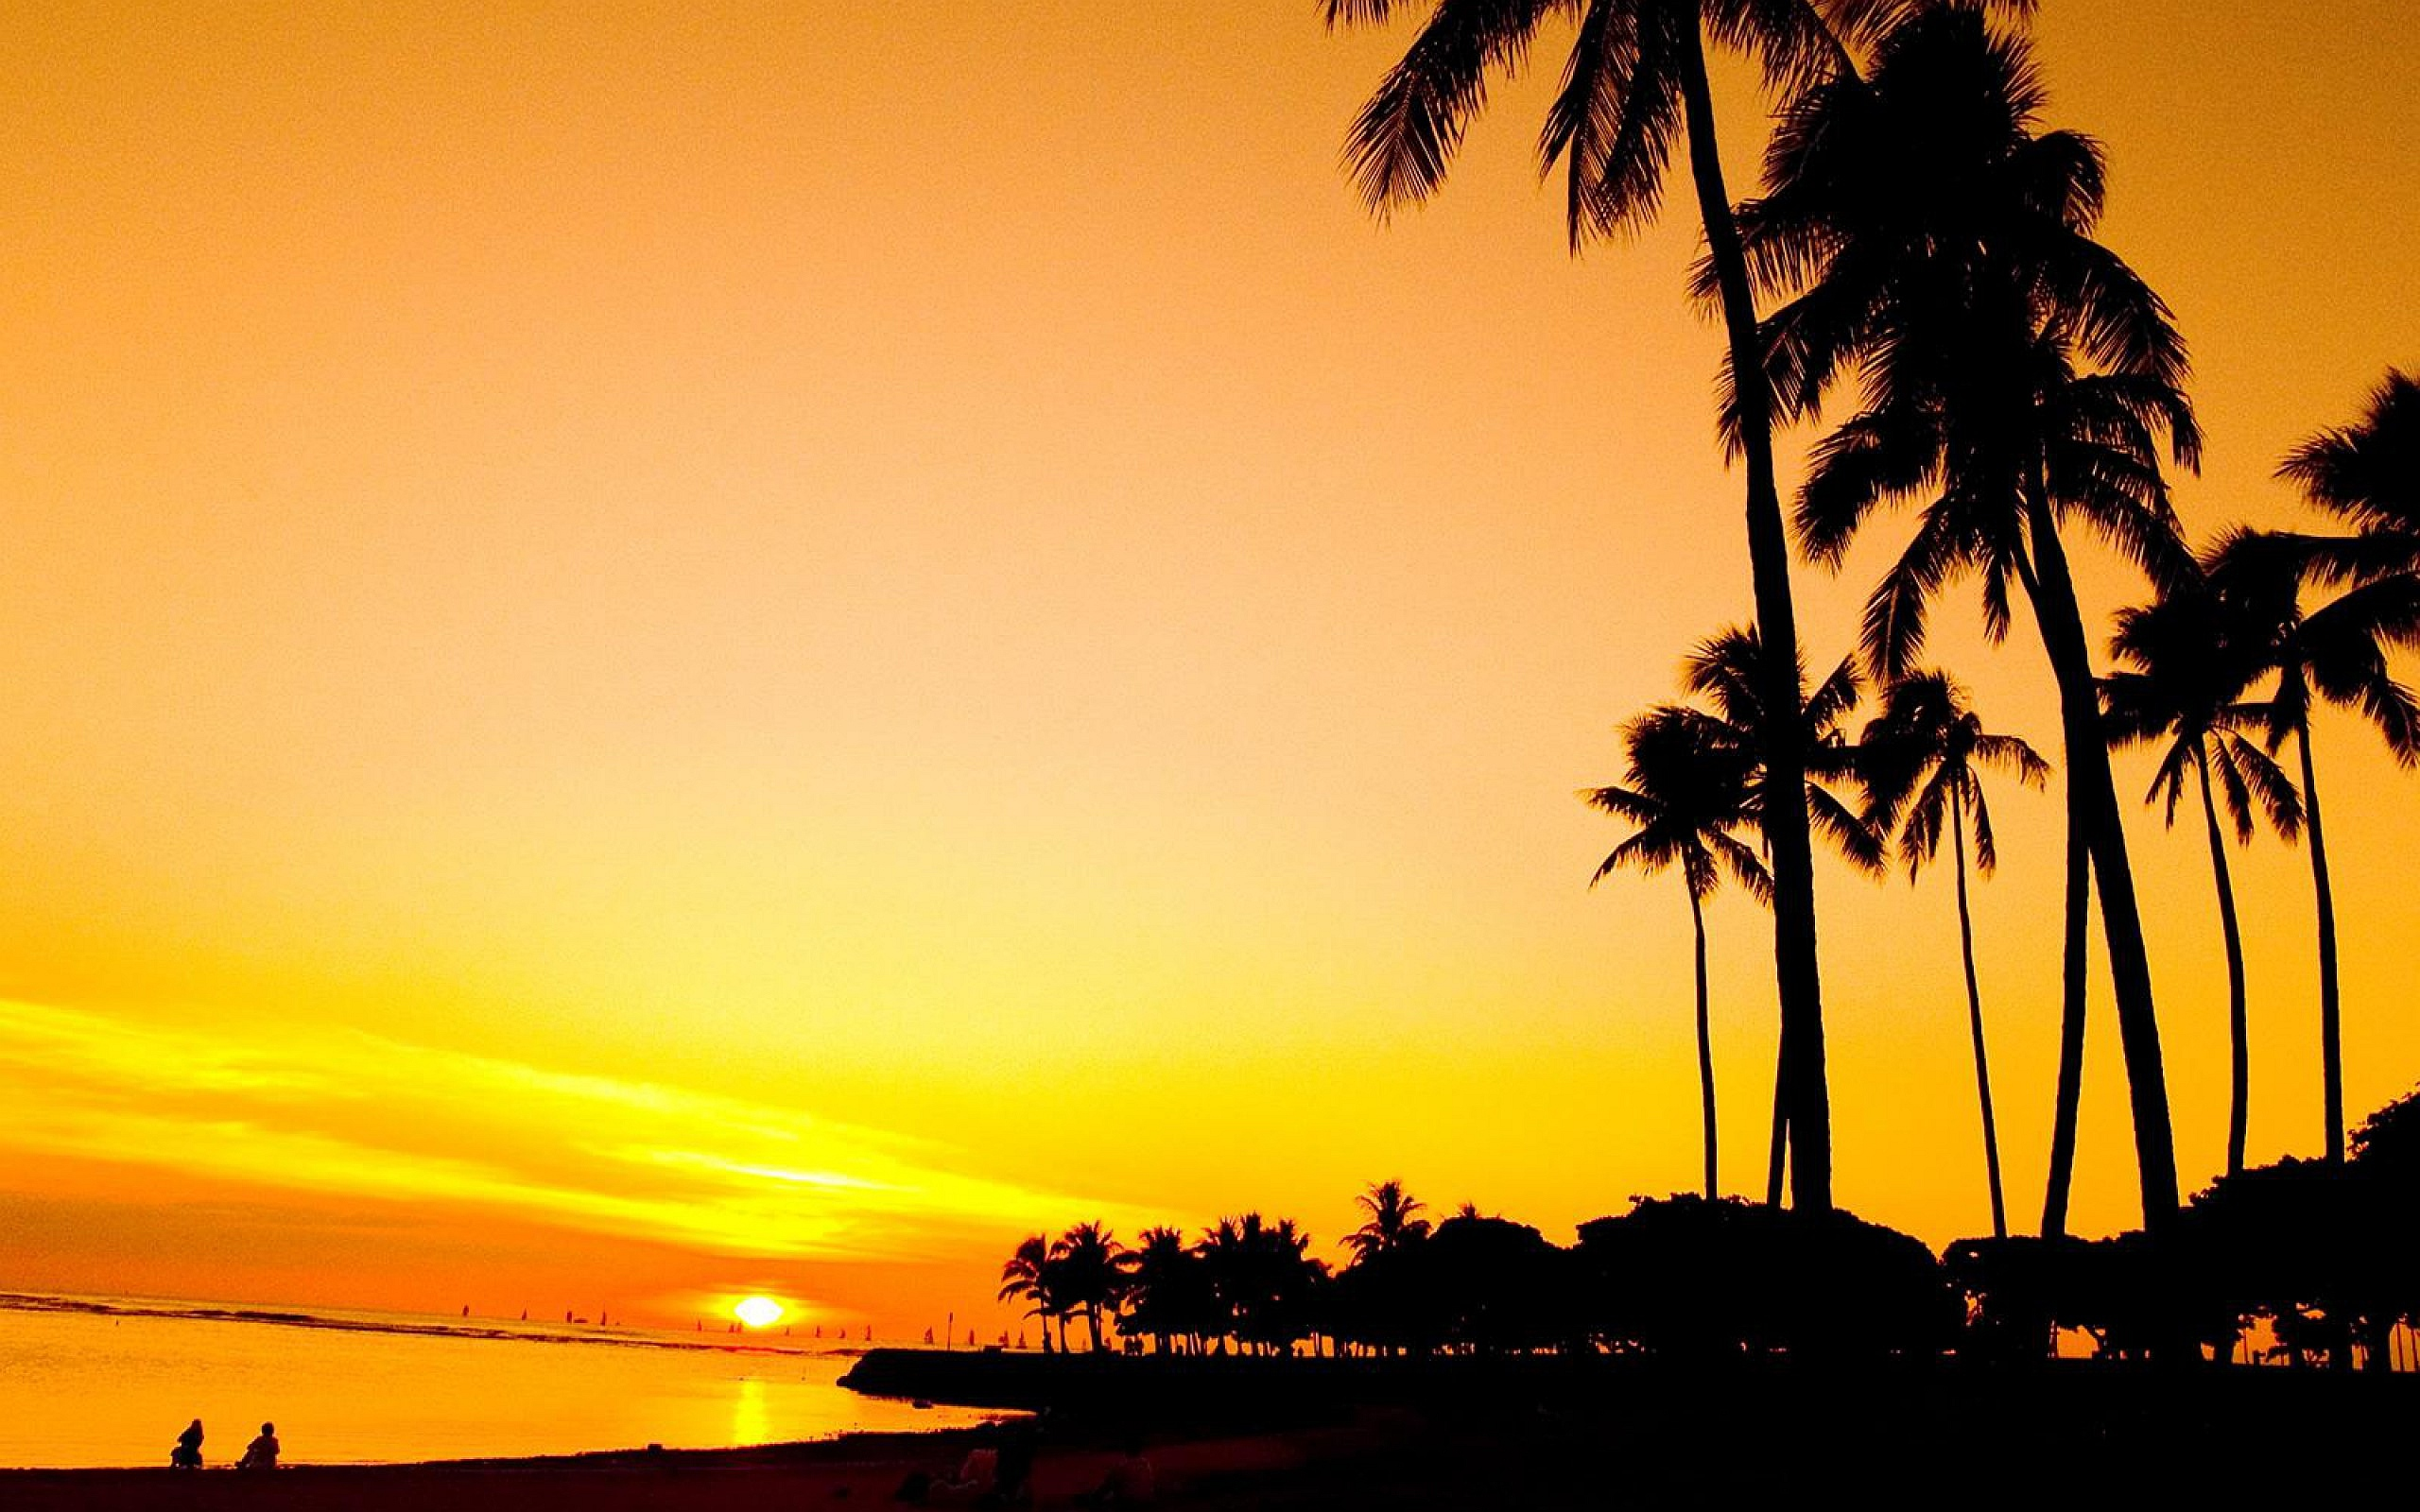 Sunset Wallpapers Palm Trees Hd Desktop Wallpapers 4k Hd